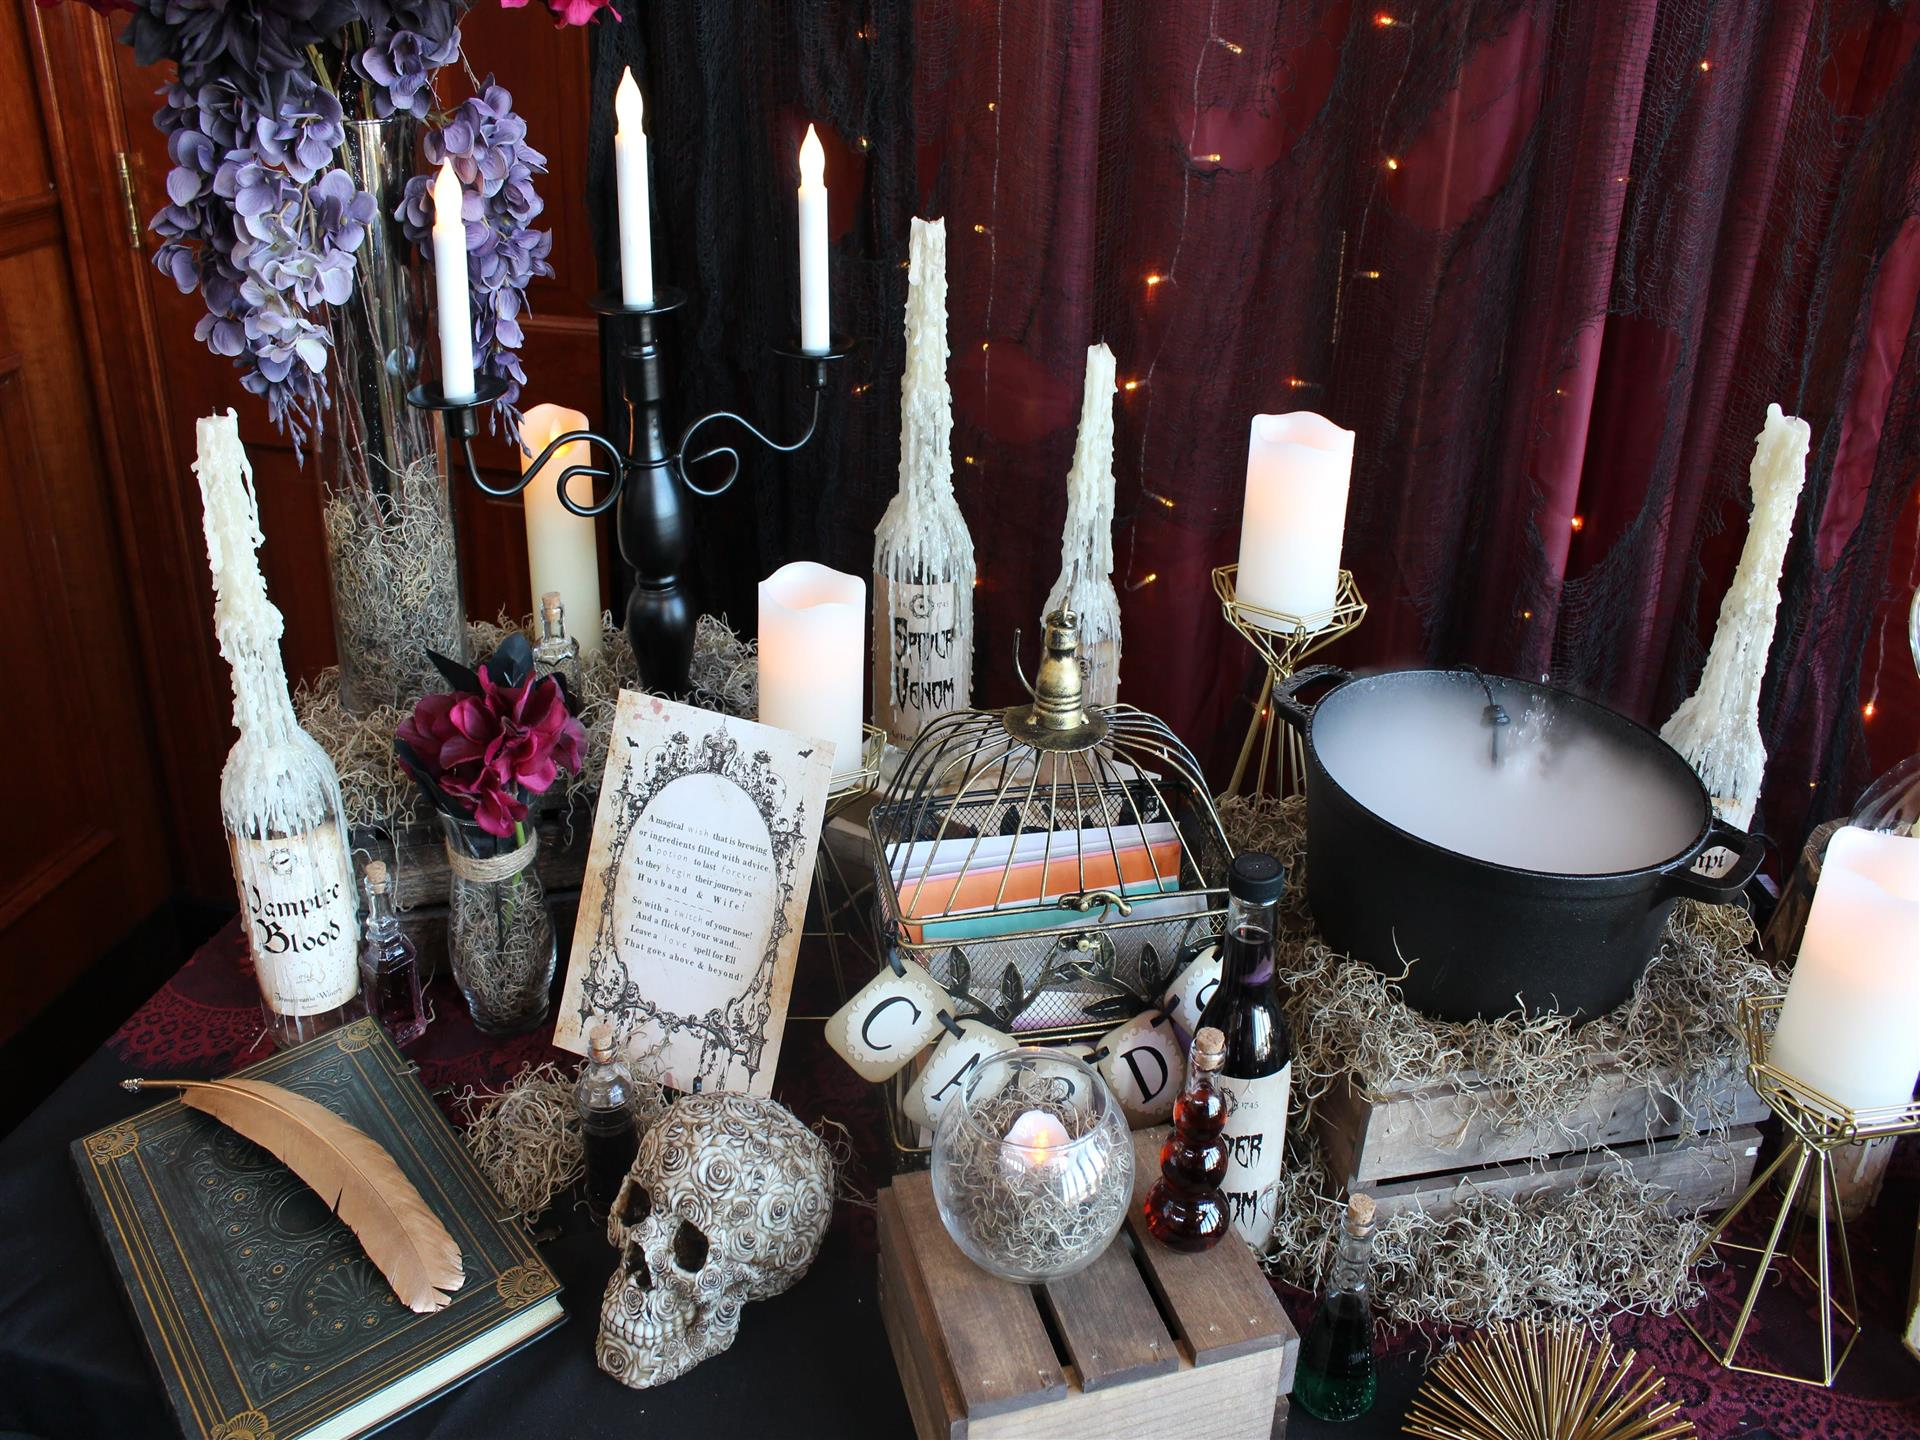 Party Room candle display